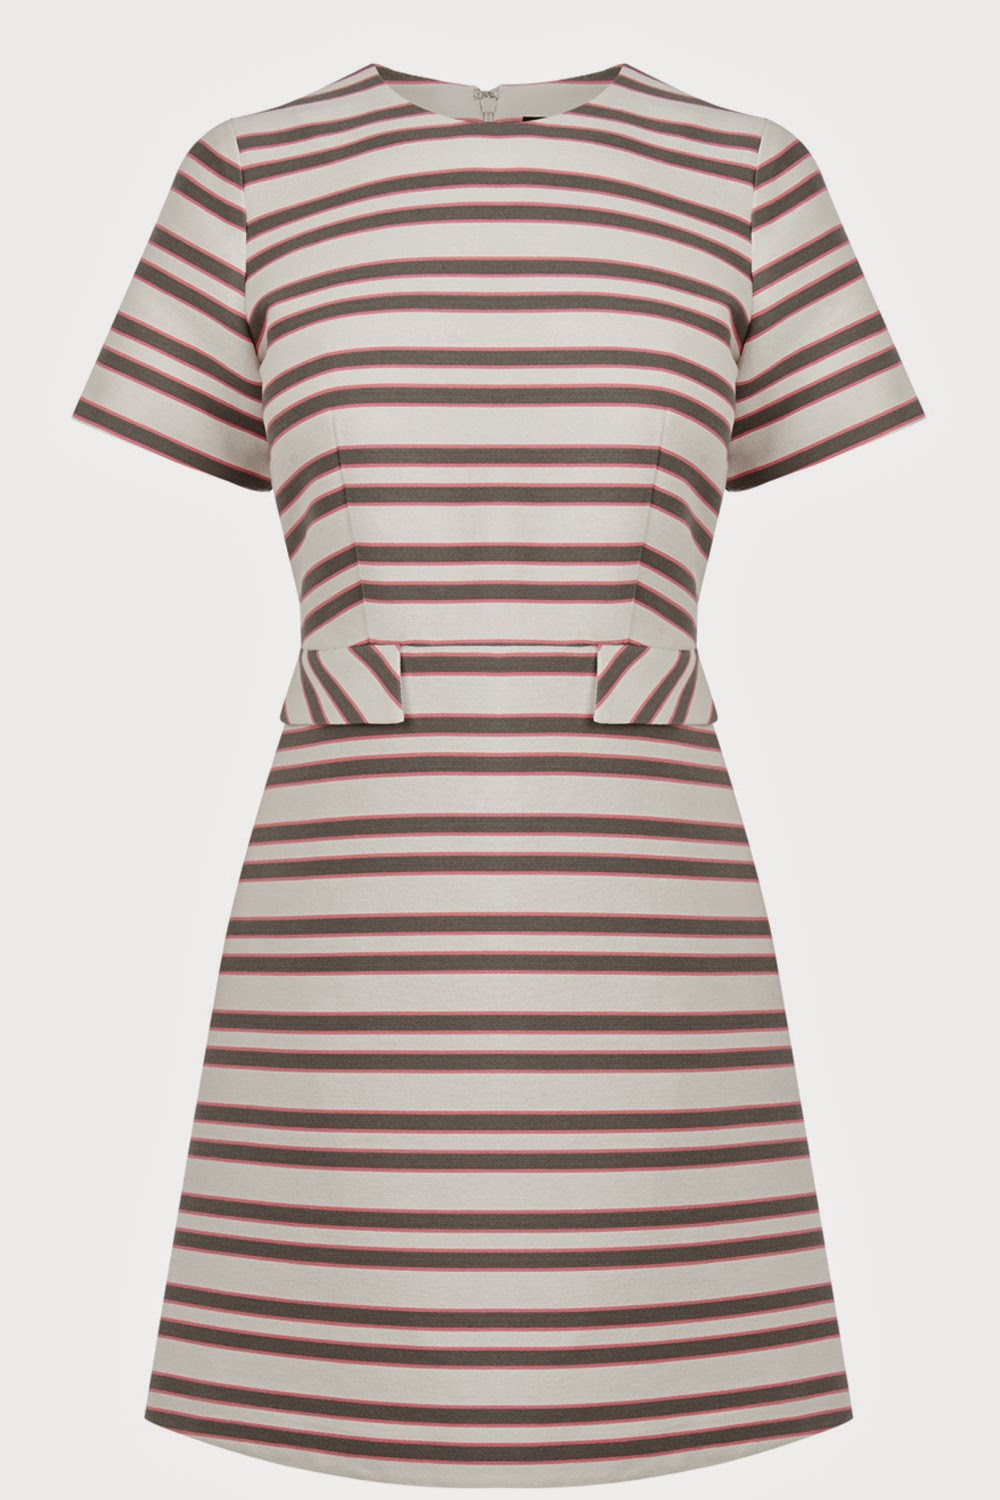 warehouse pink stripe dress, white grey pink stripe dress,